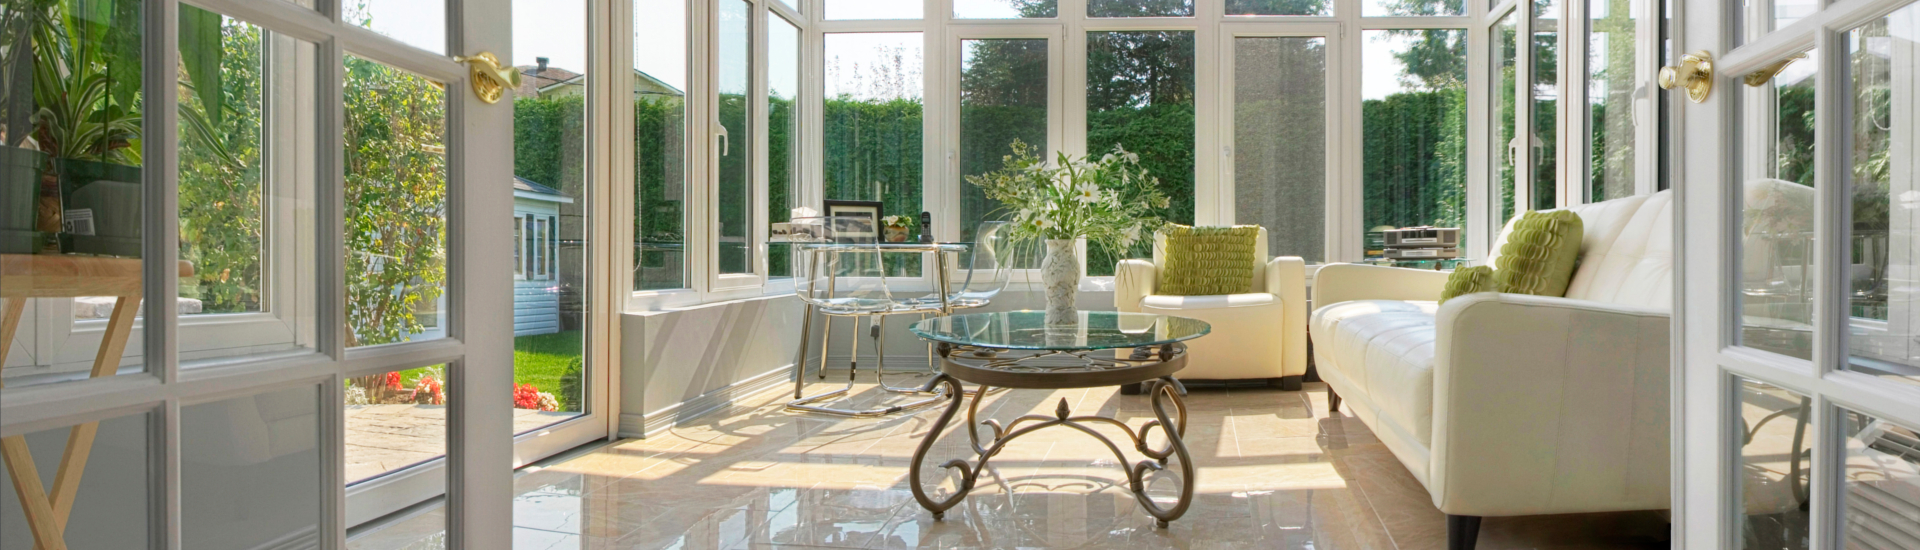 Sunrooms/Screened Rooms